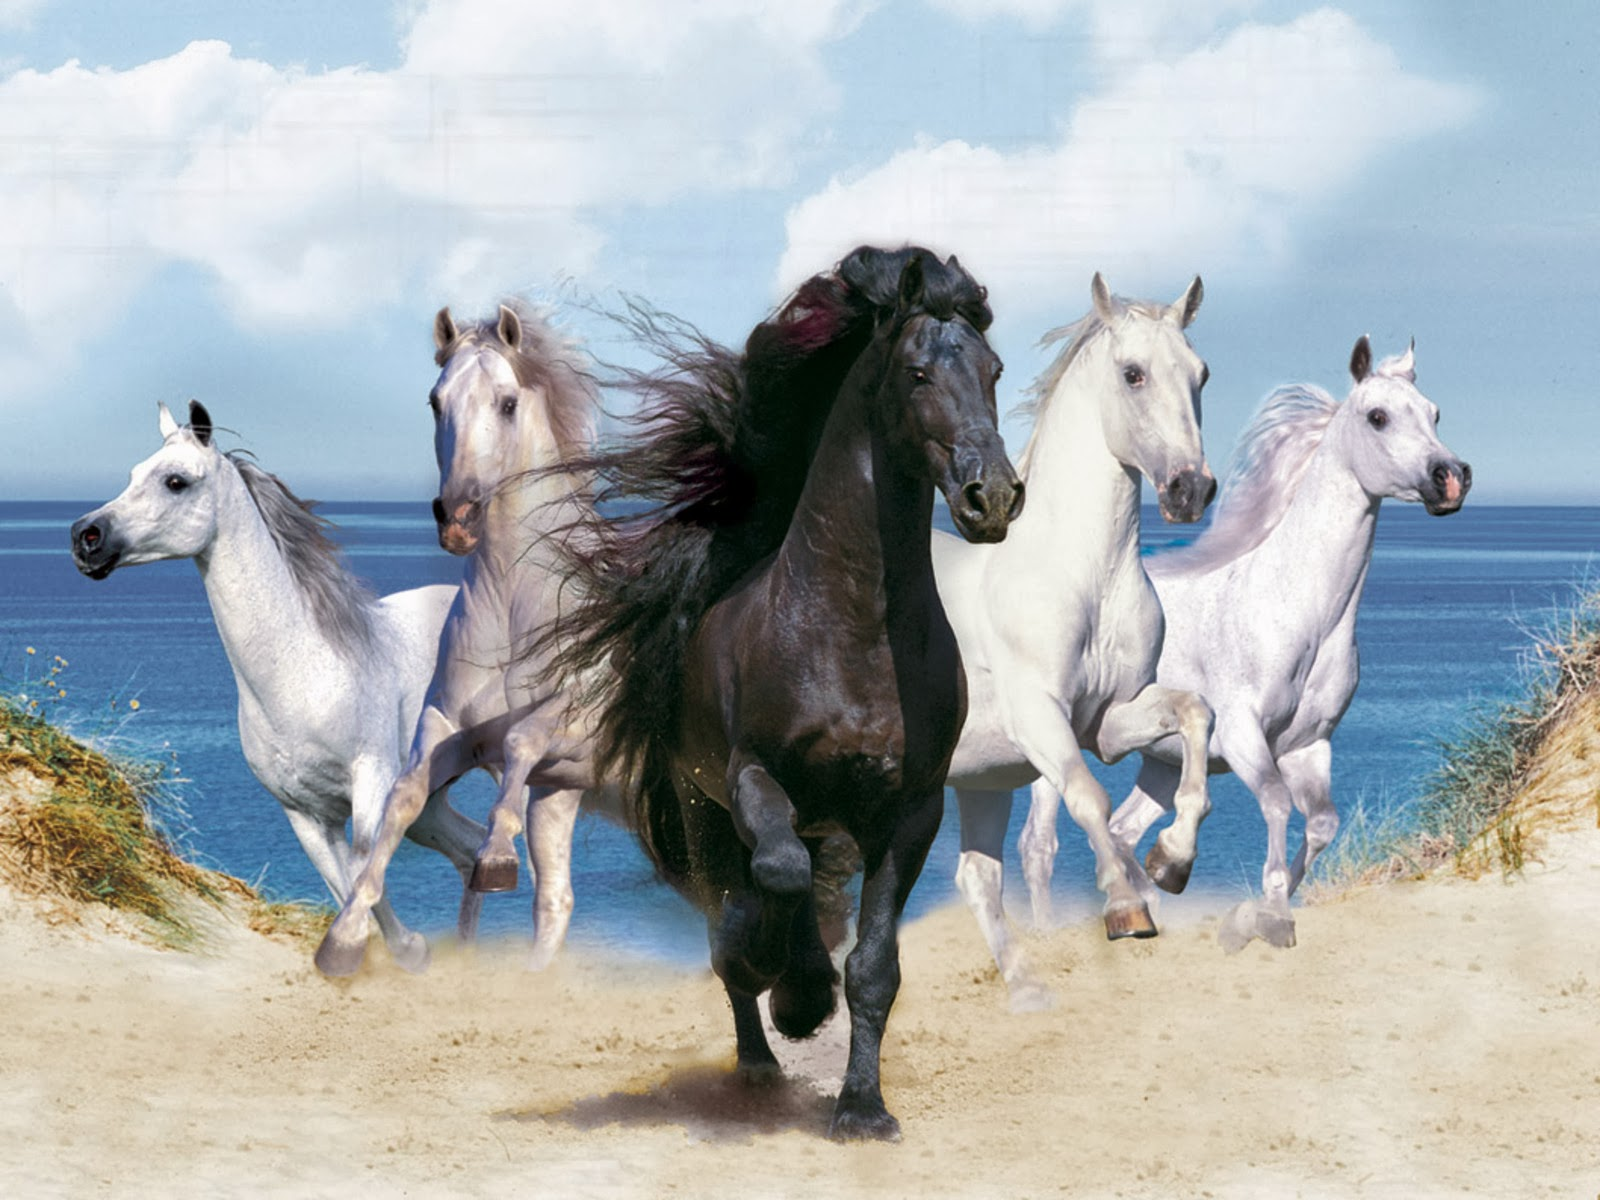 Hd wallpapers desktop horse free beautiful desktop wallpapers 2014 download hd wallpapers desktop horse thecheapjerseys Image collections